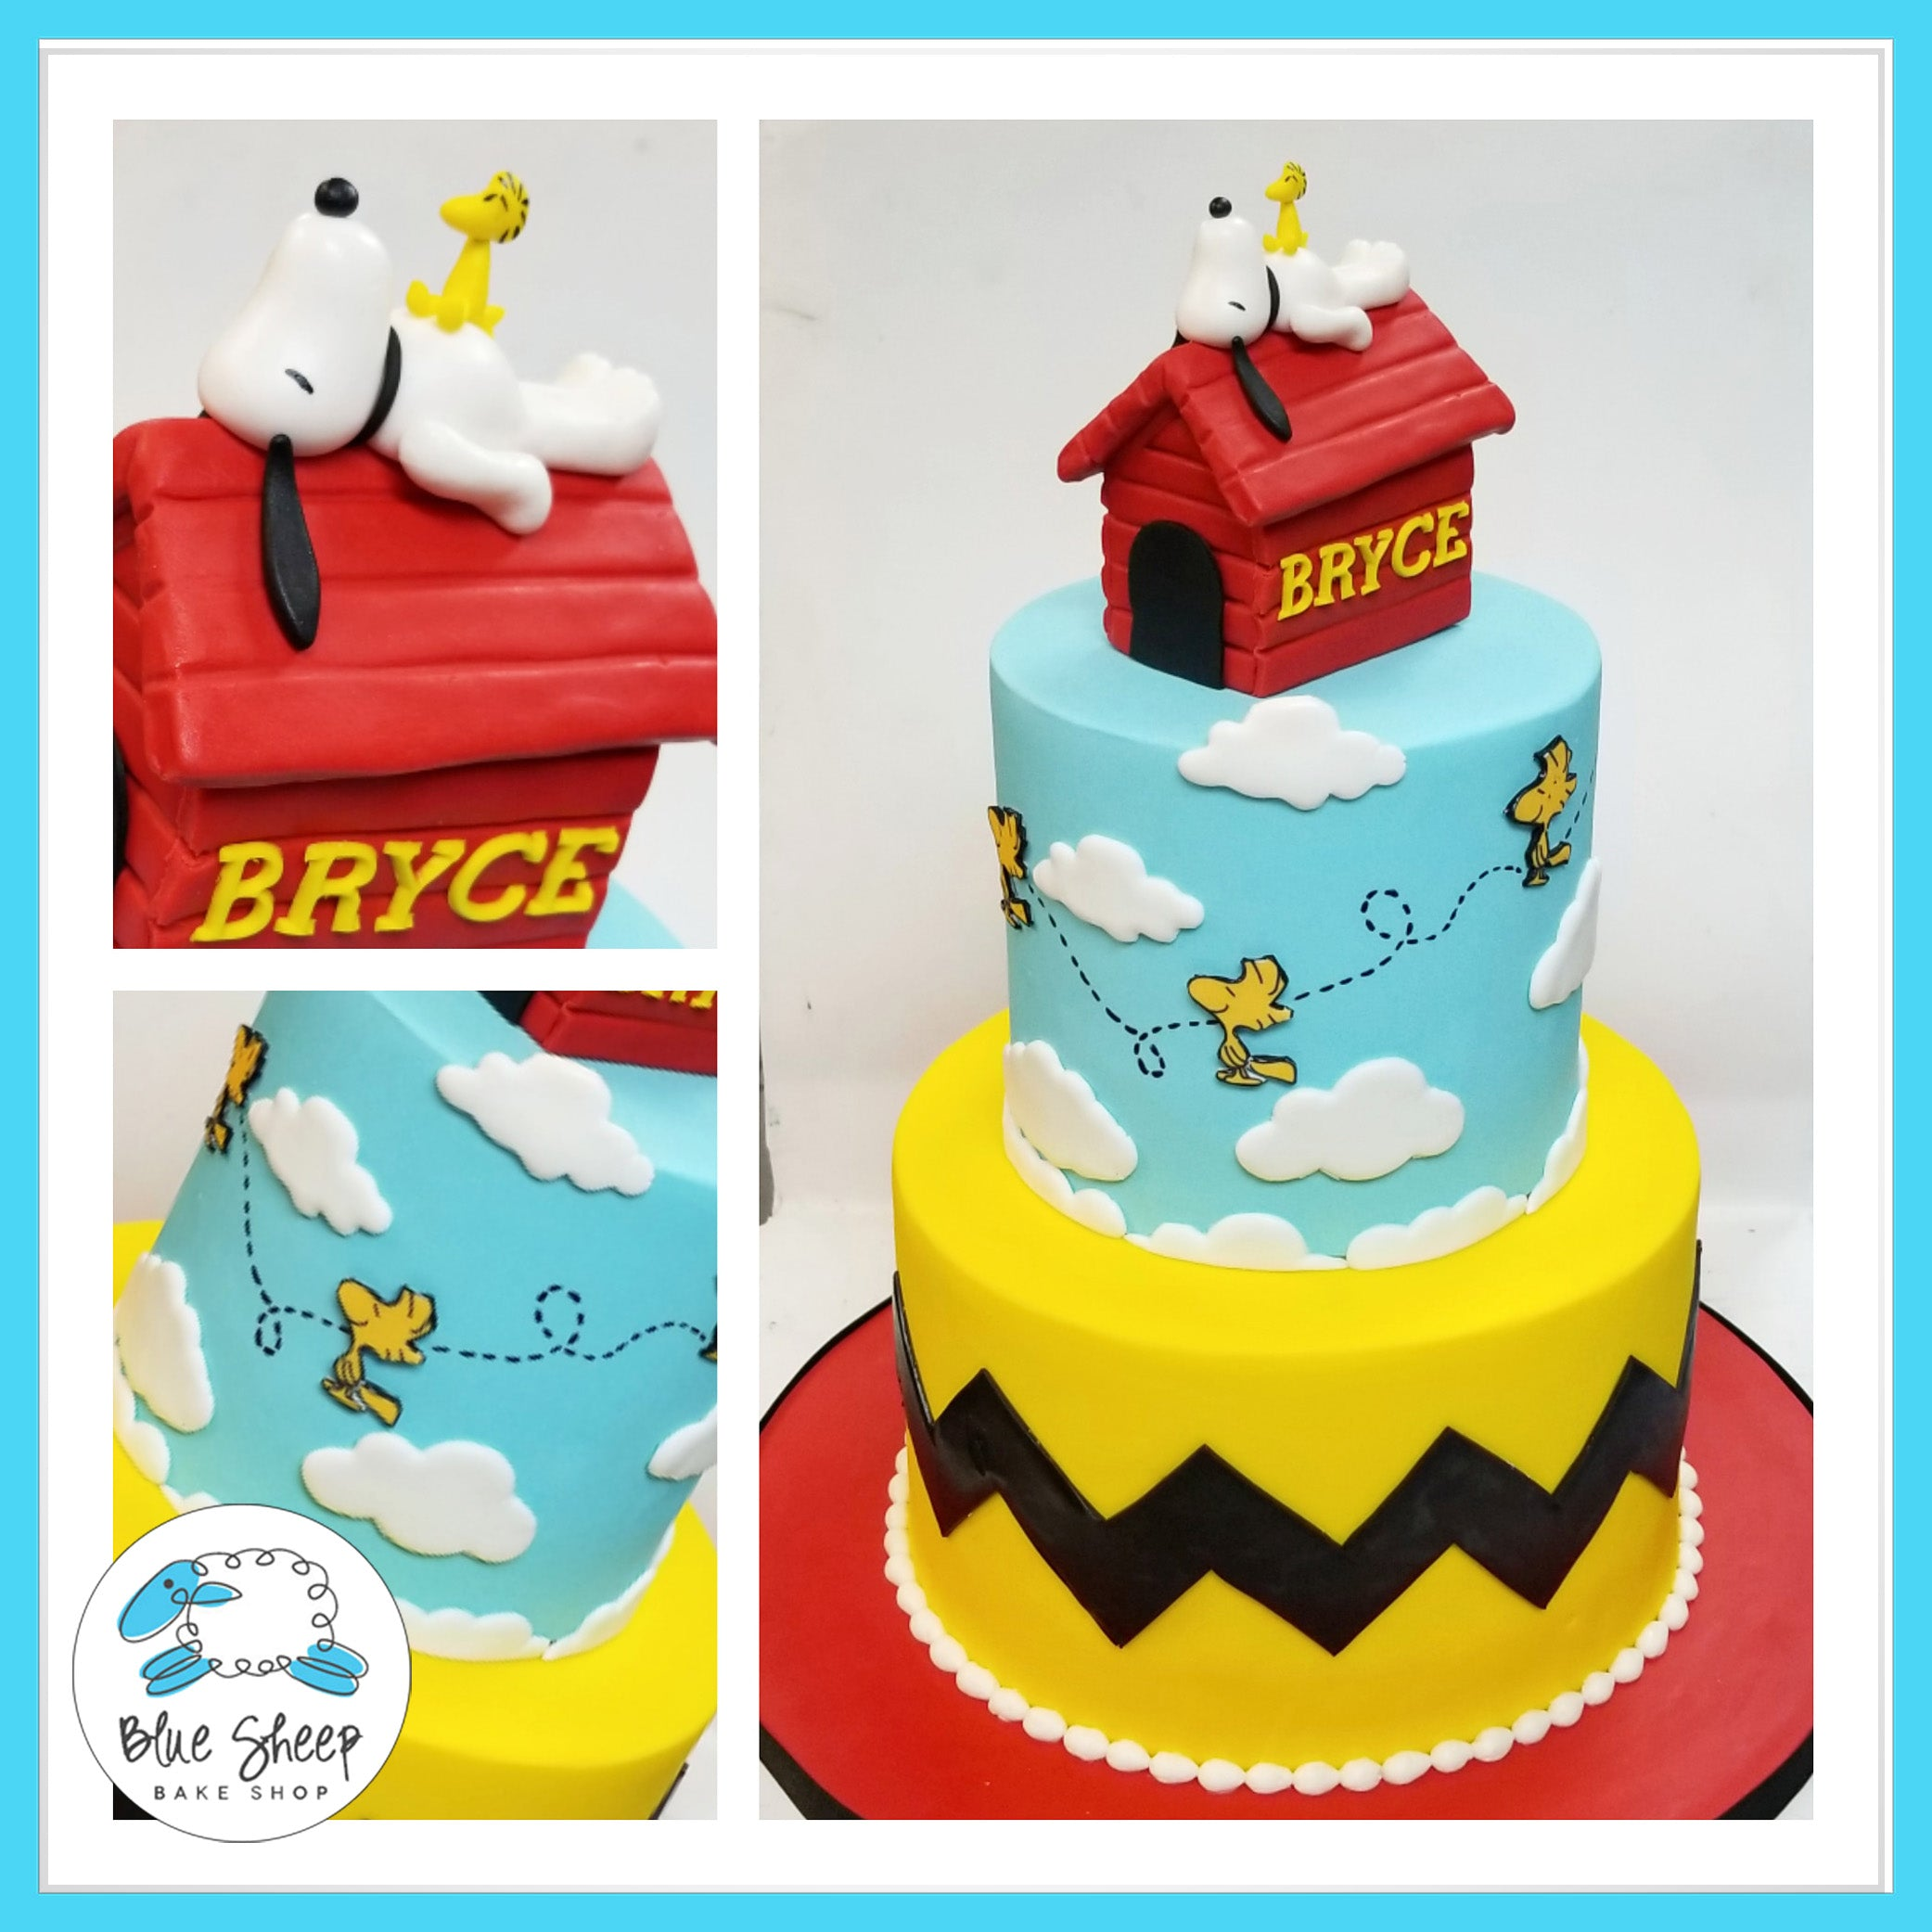 Charlie Brown And Snoopy Birthday Cake Blue Sheep Bake Shop